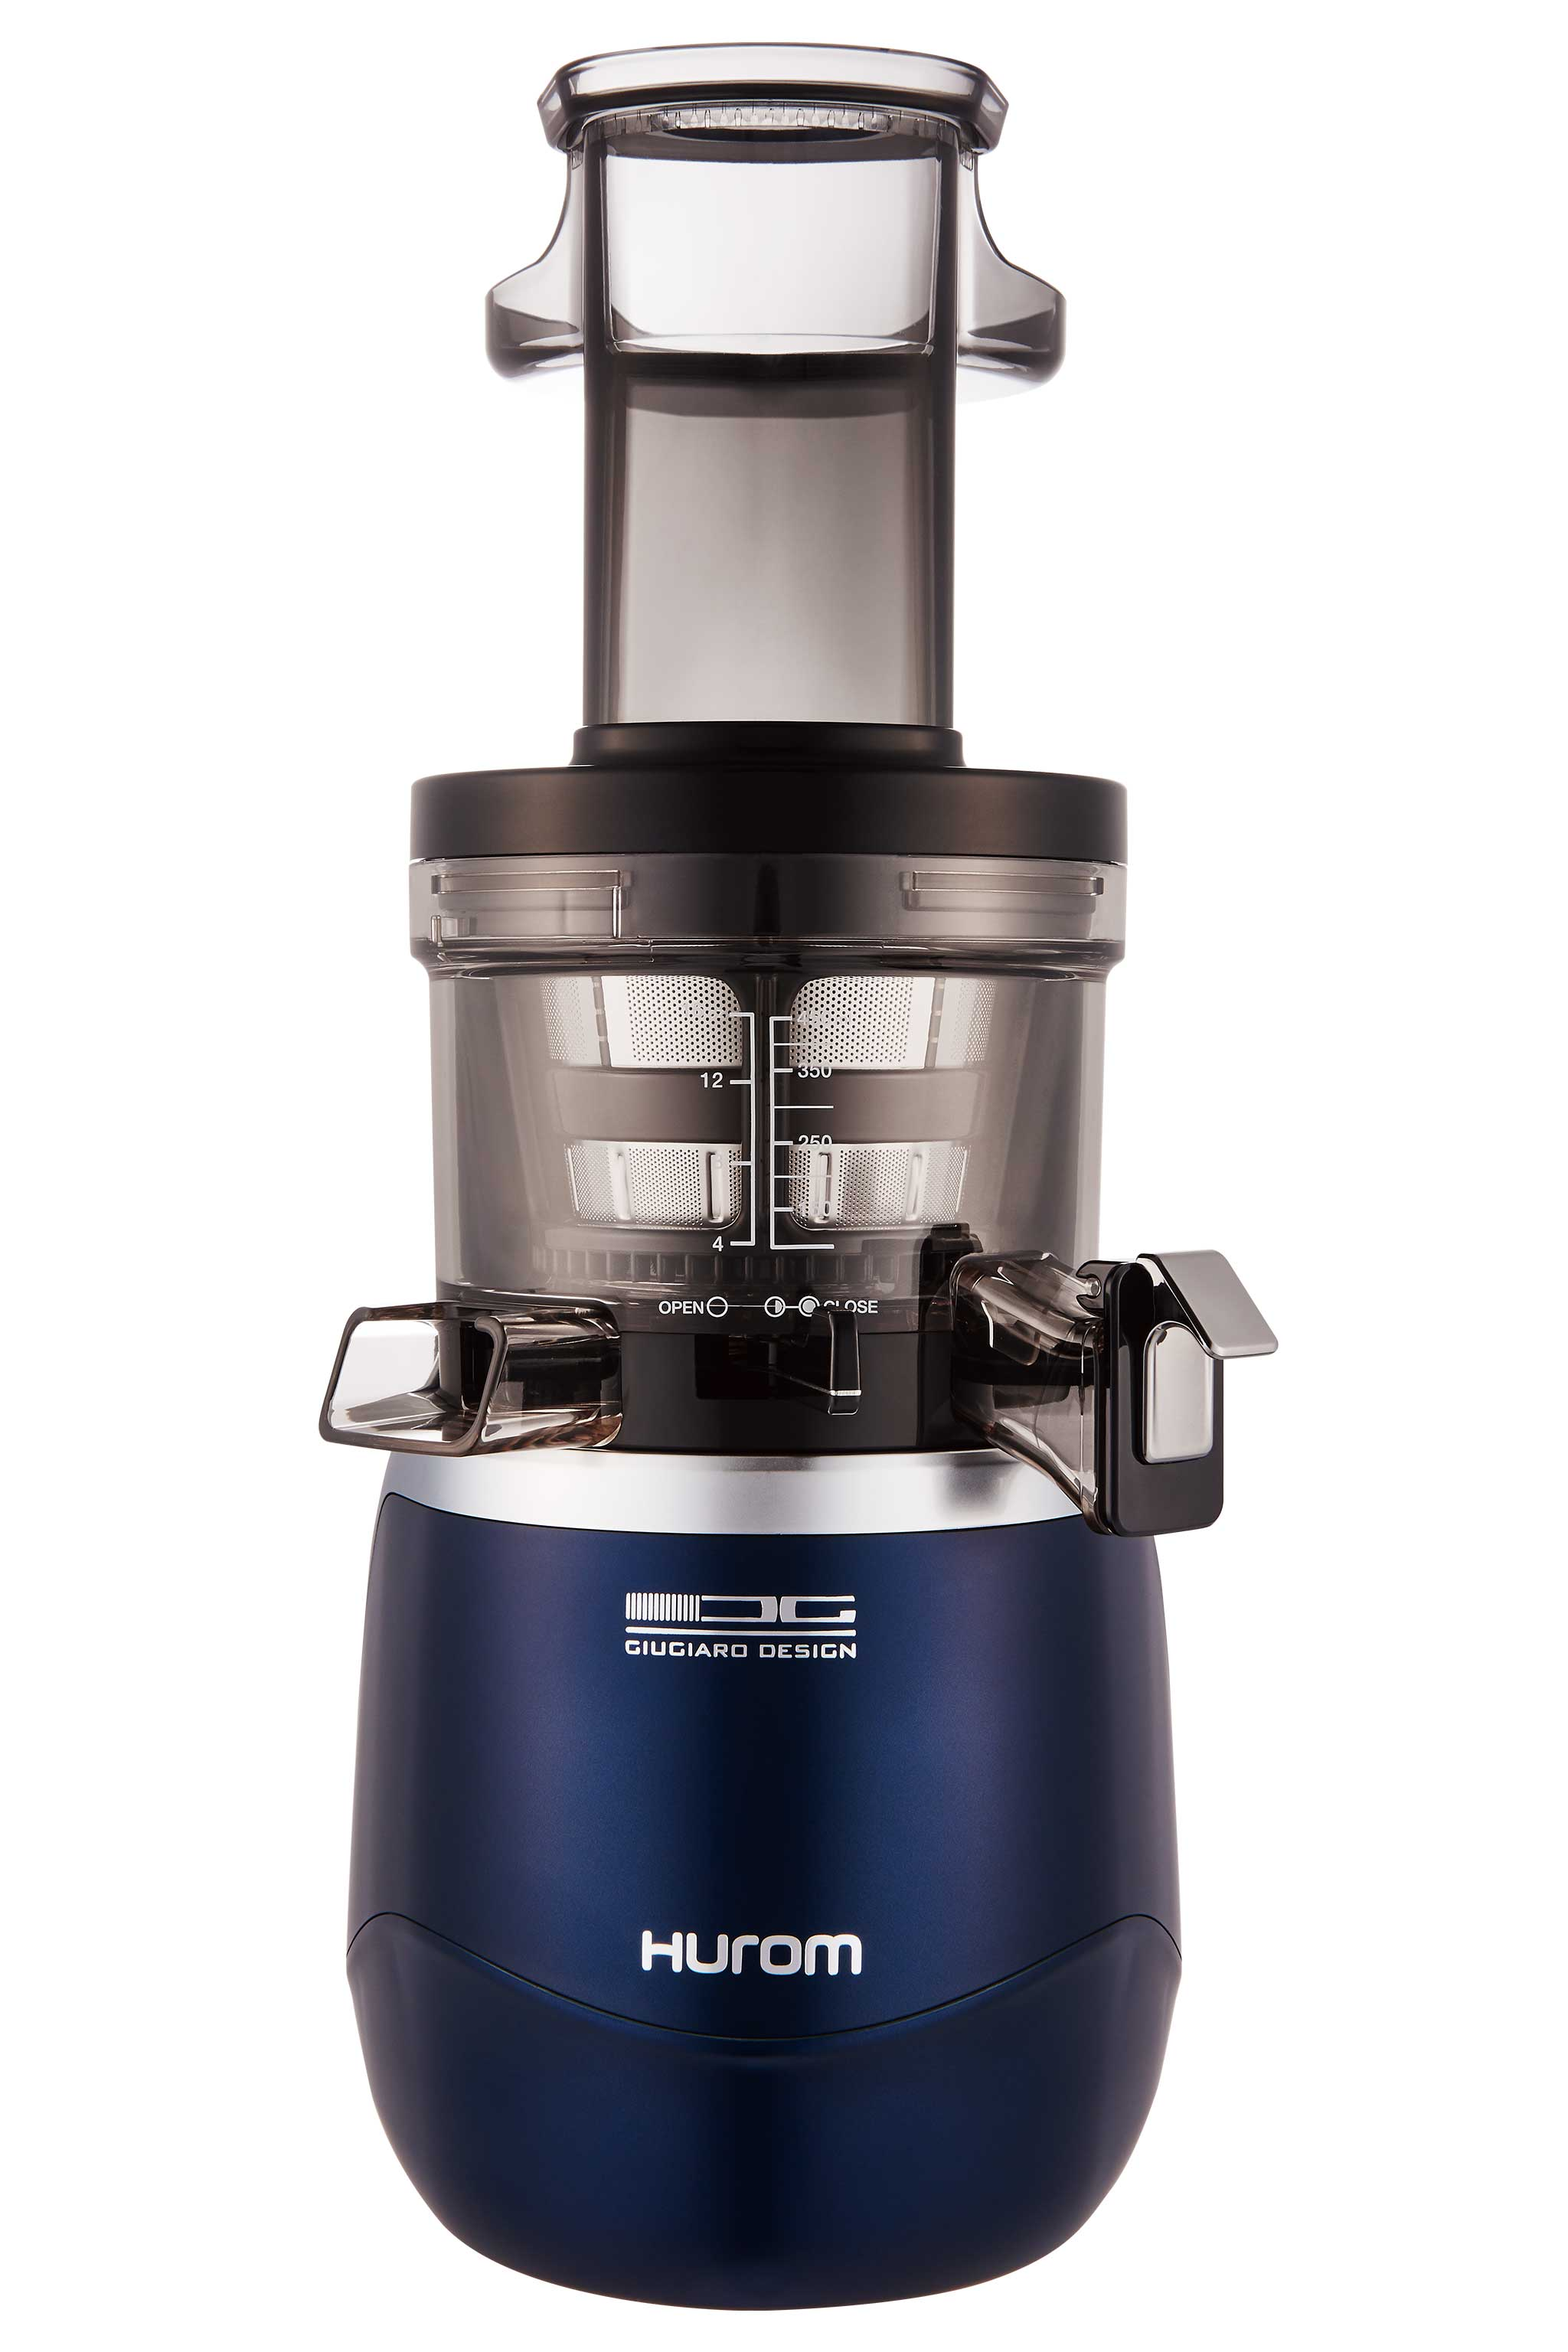 Hurom Slow Juicer In Usa : Hurom America Careers, Funding, and Management Team AngelList